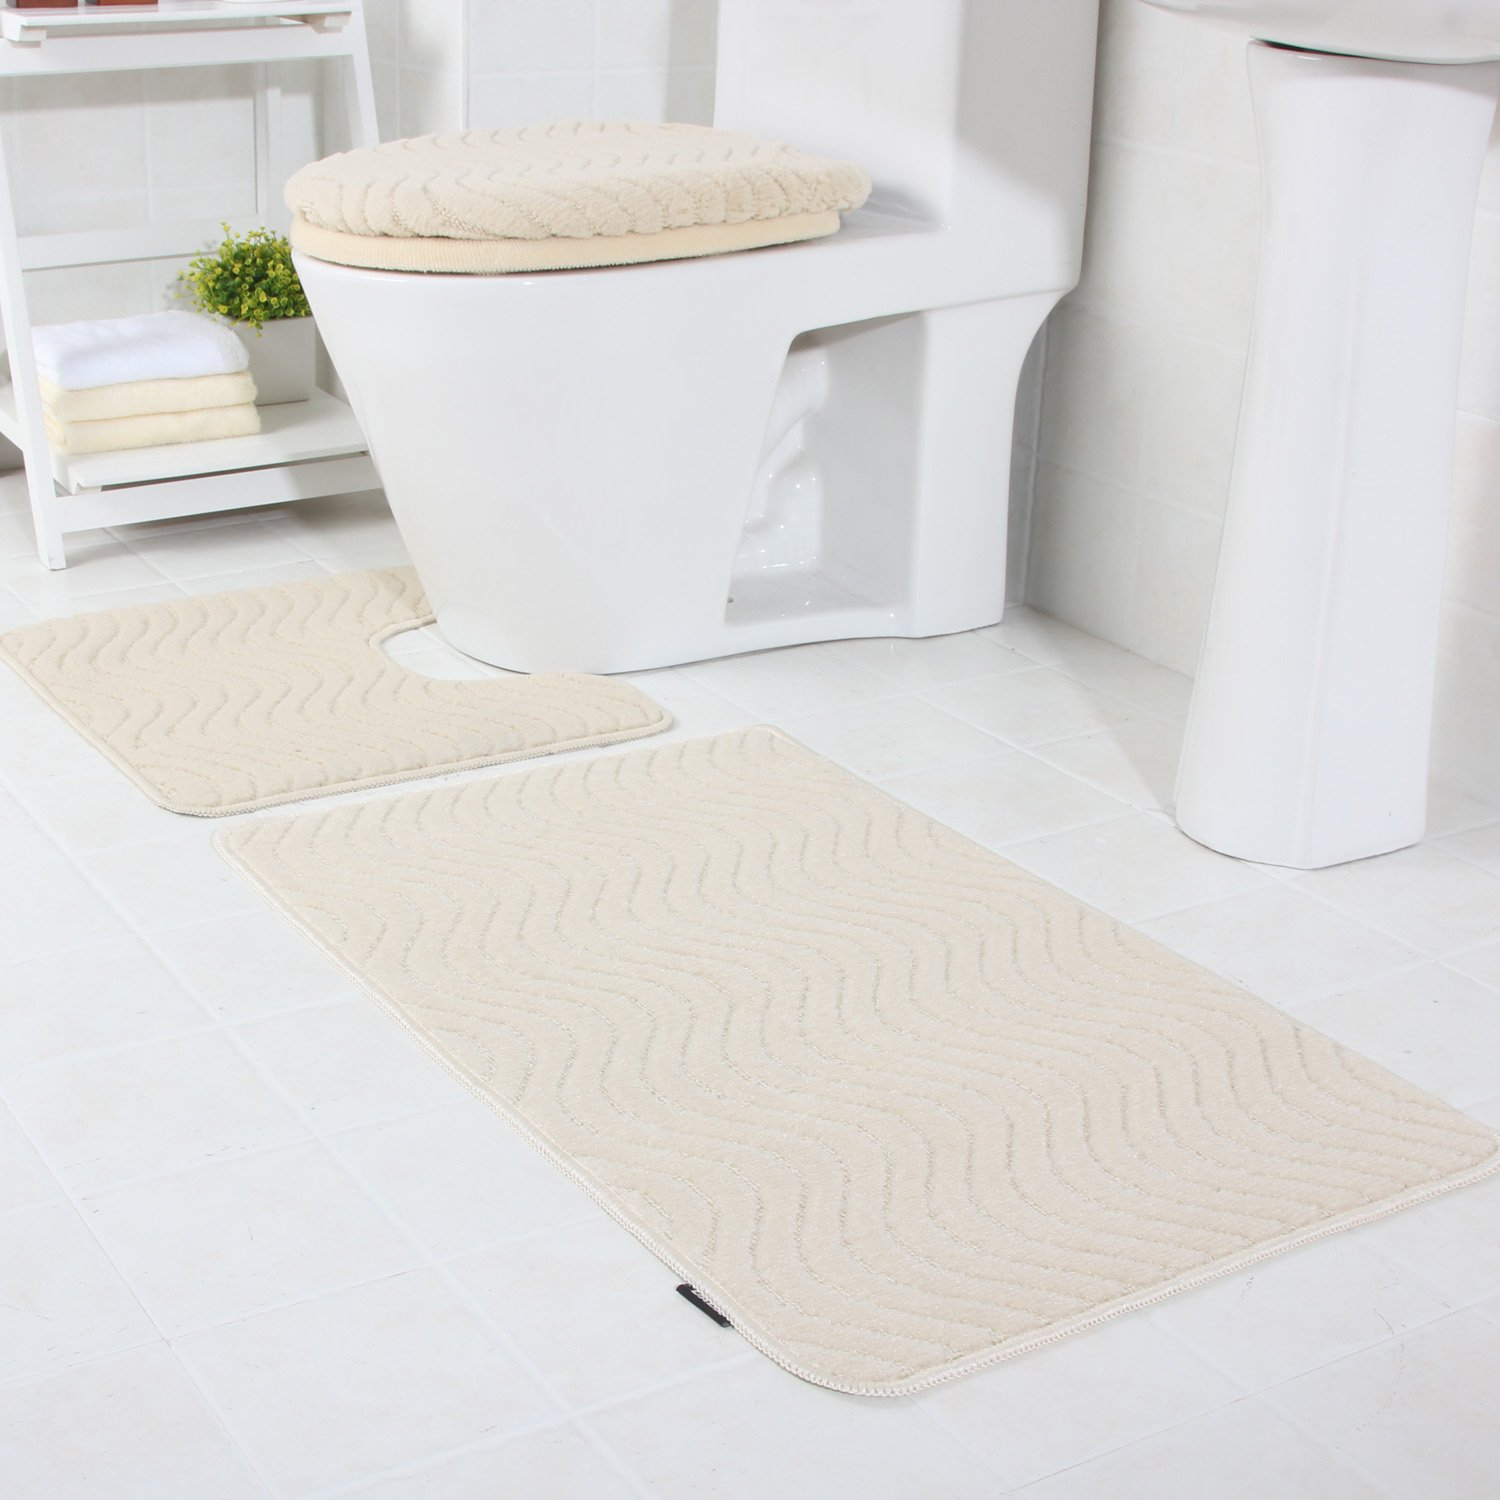 DADA Bath Mats Sets 3 Piece Luxury Soft Polypropylene Bath Mat, Pedestal and Toilet Lid Cover Set Navy Blue DADA HOMETEXTILE